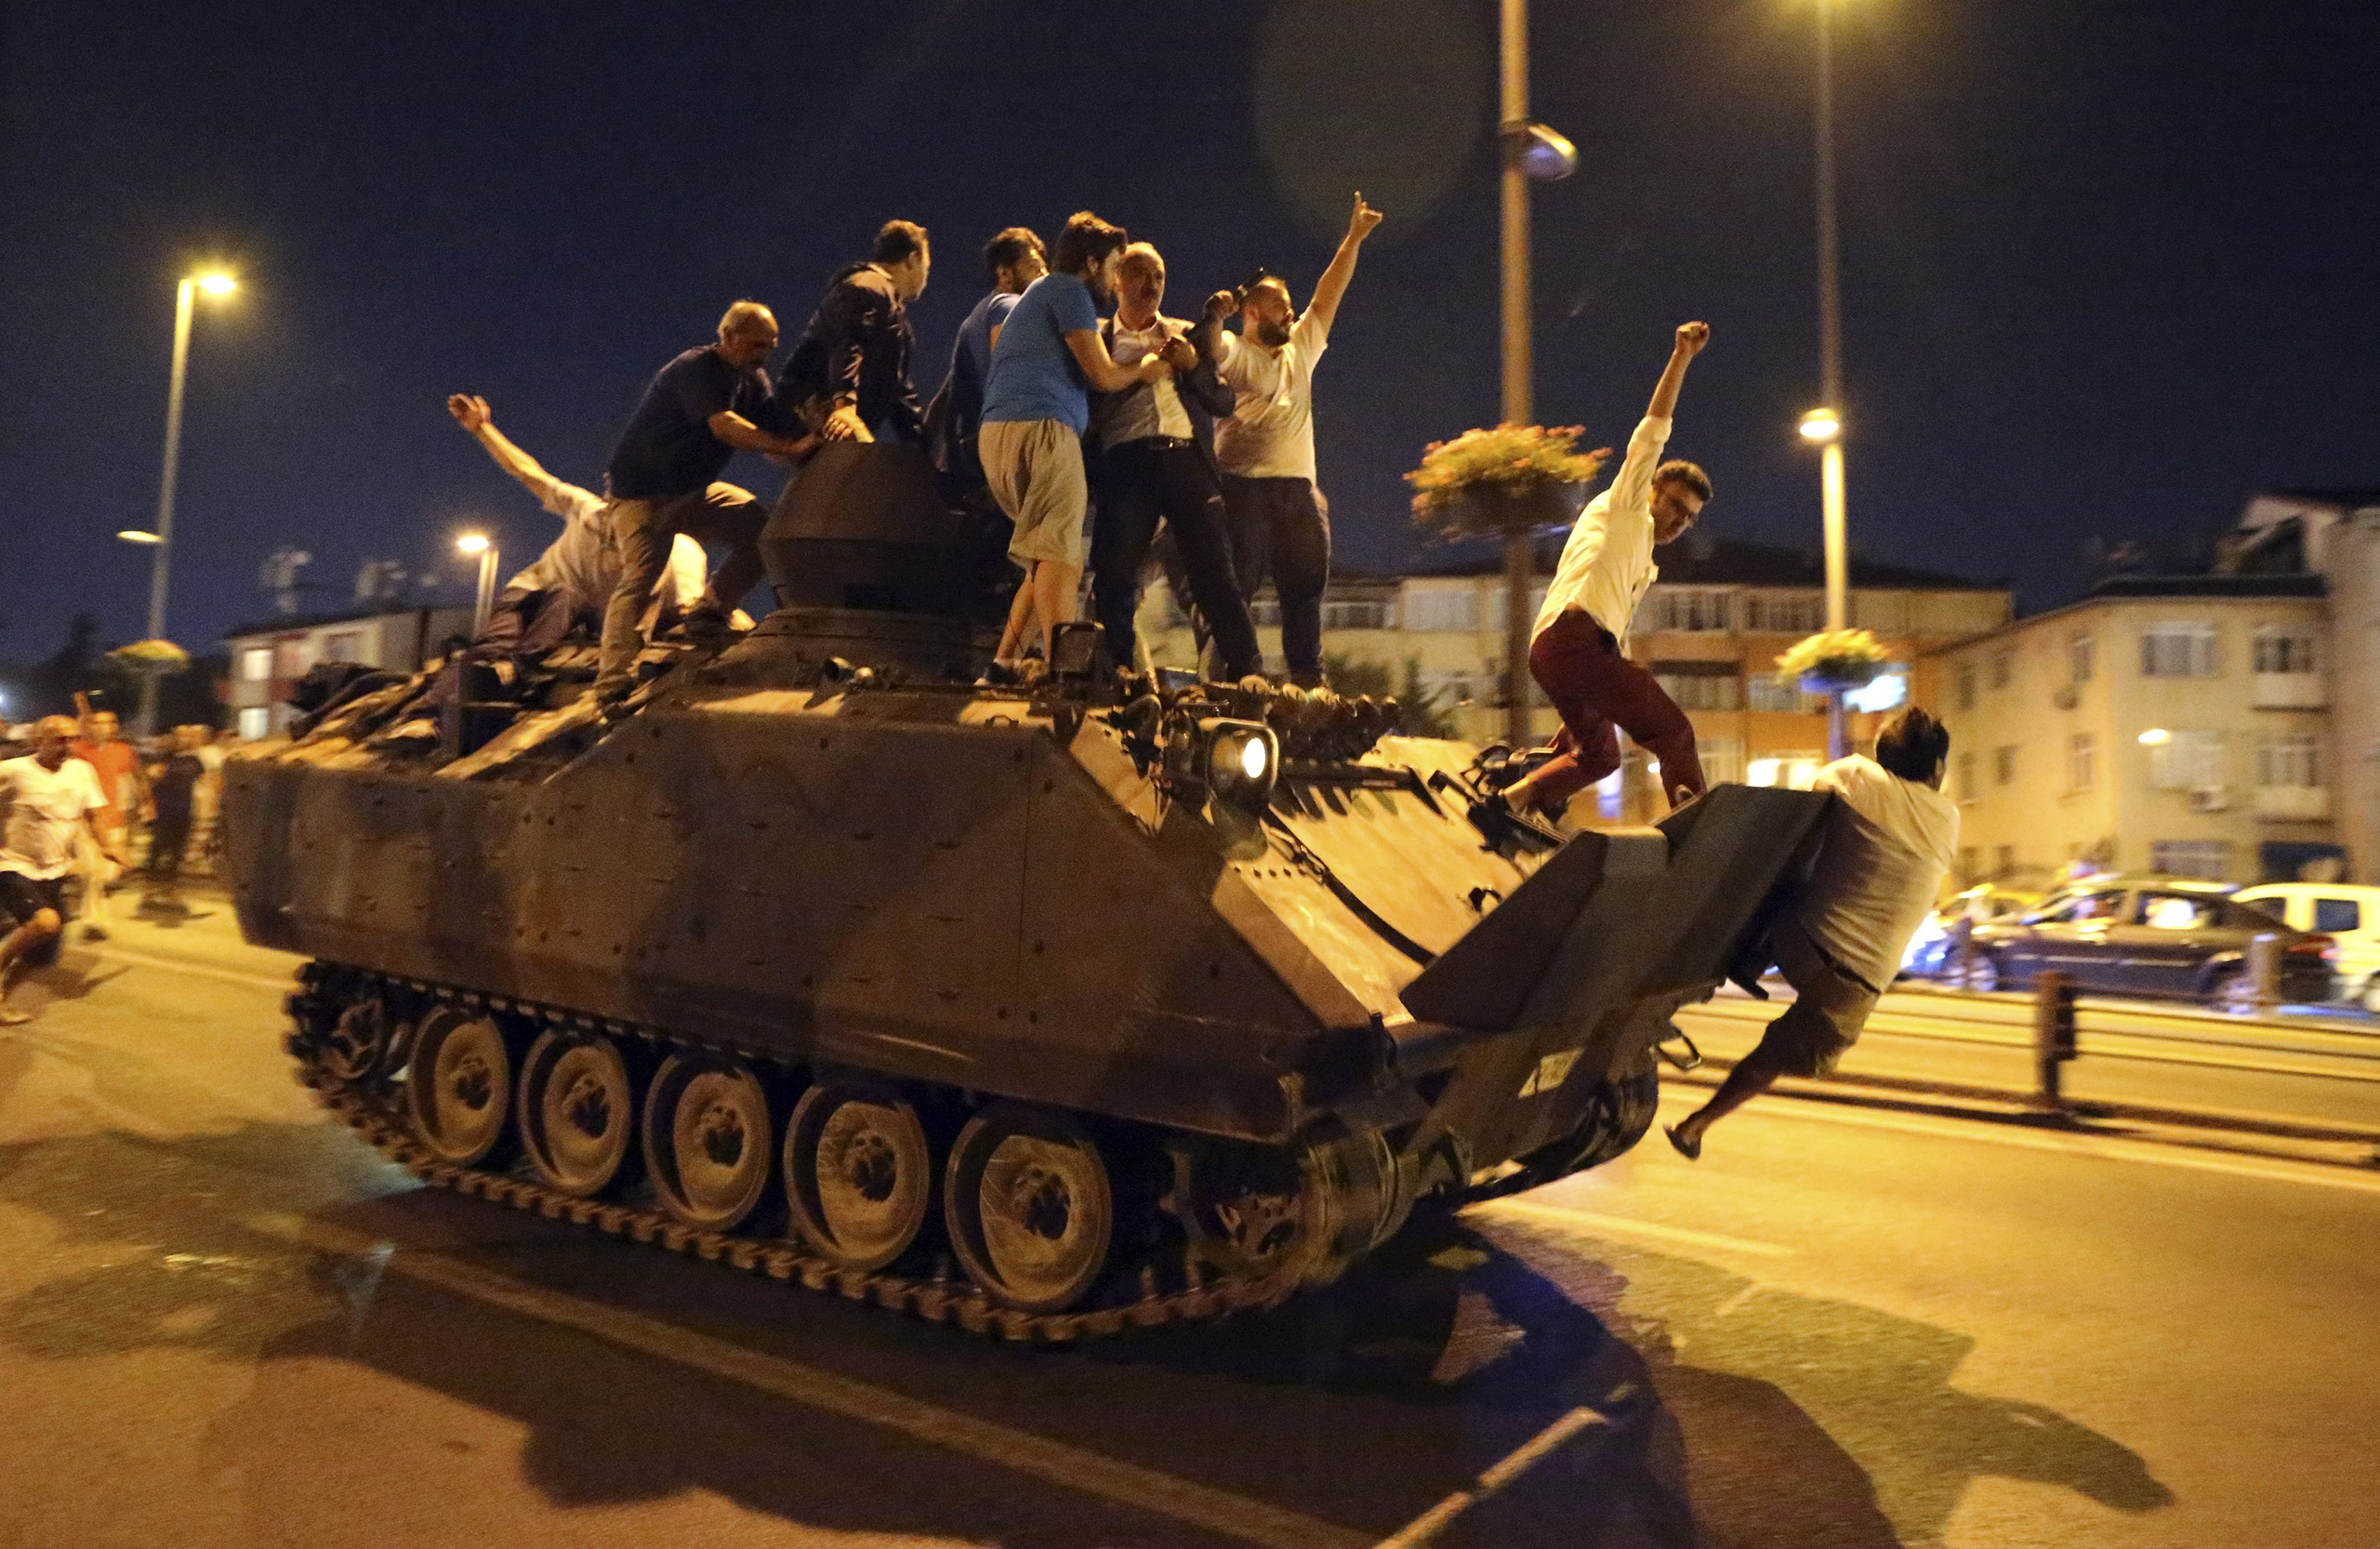 People occupy a tank in Istanbul, Turkey, on July 16, 2016. Turkish Prime Minister Yildirim reportedly said that the Turkish military was involved in an attempted coup d'etat. The Turkish military meanwhile stated it had taken over control.